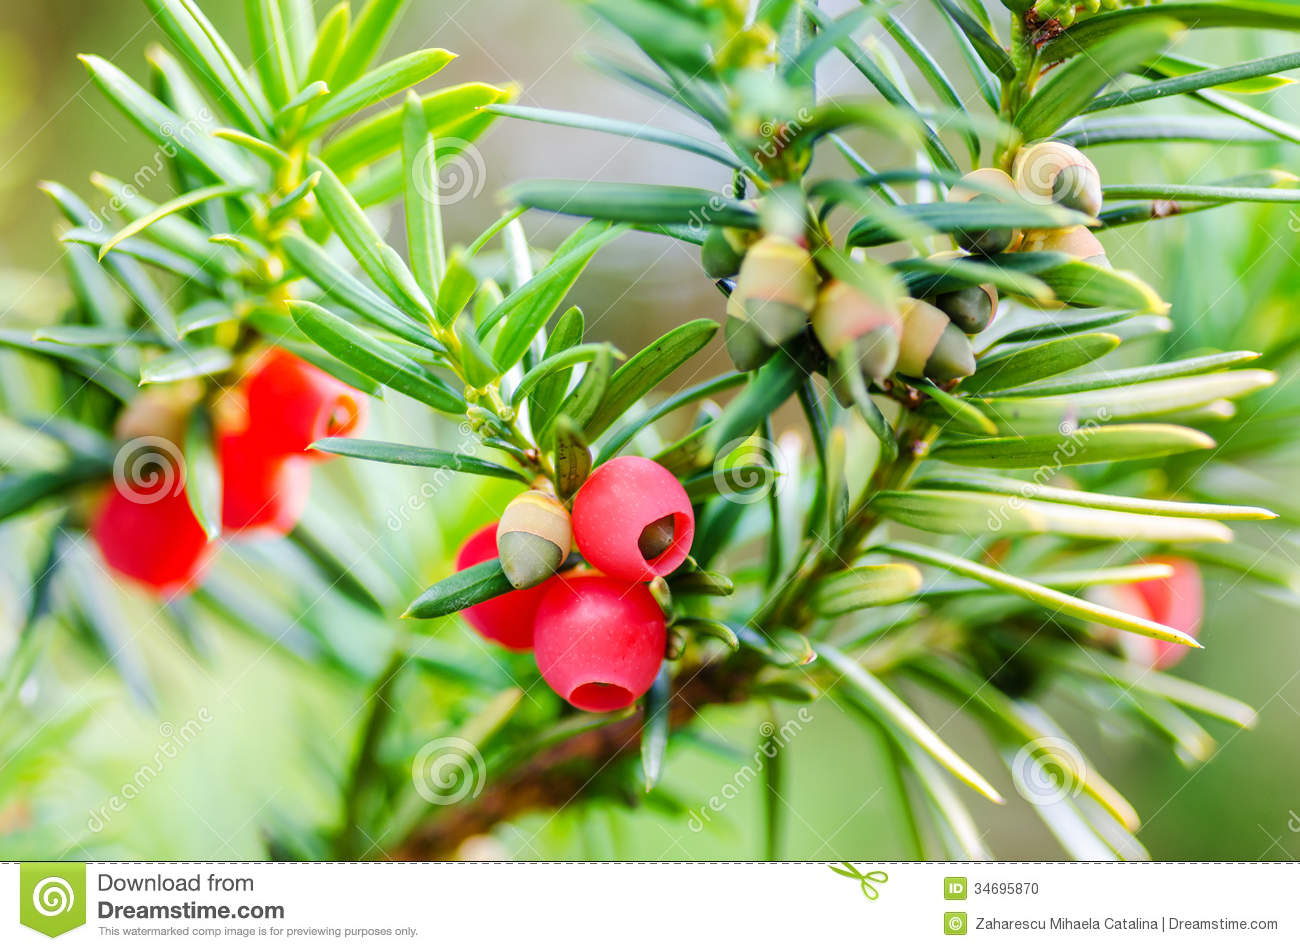 yew taxus baccata green leaves and red fruit stock image image